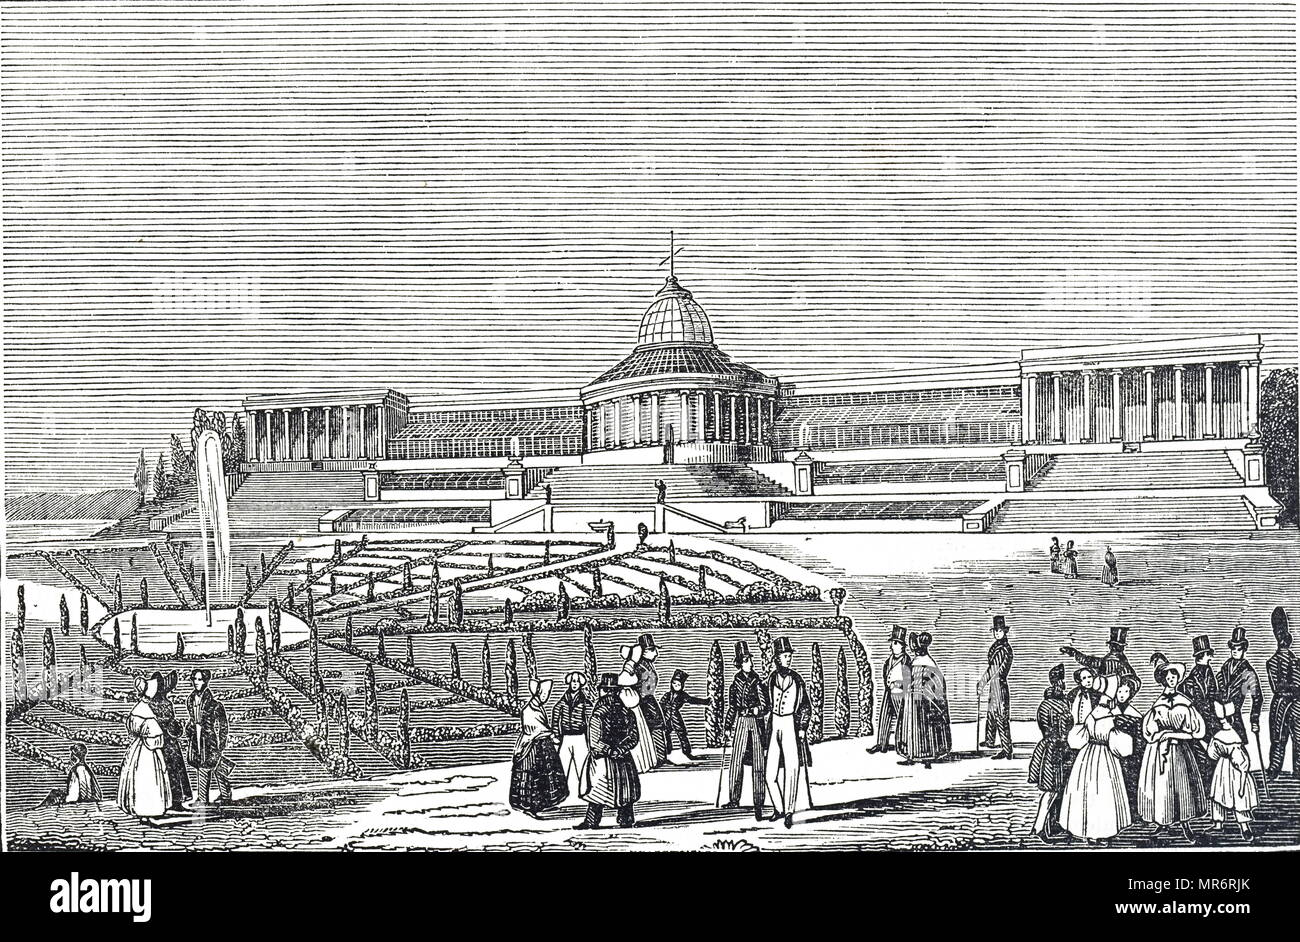 Engraving depicting Botanic Gardens in Brussels. Dated 19th century - Stock Image